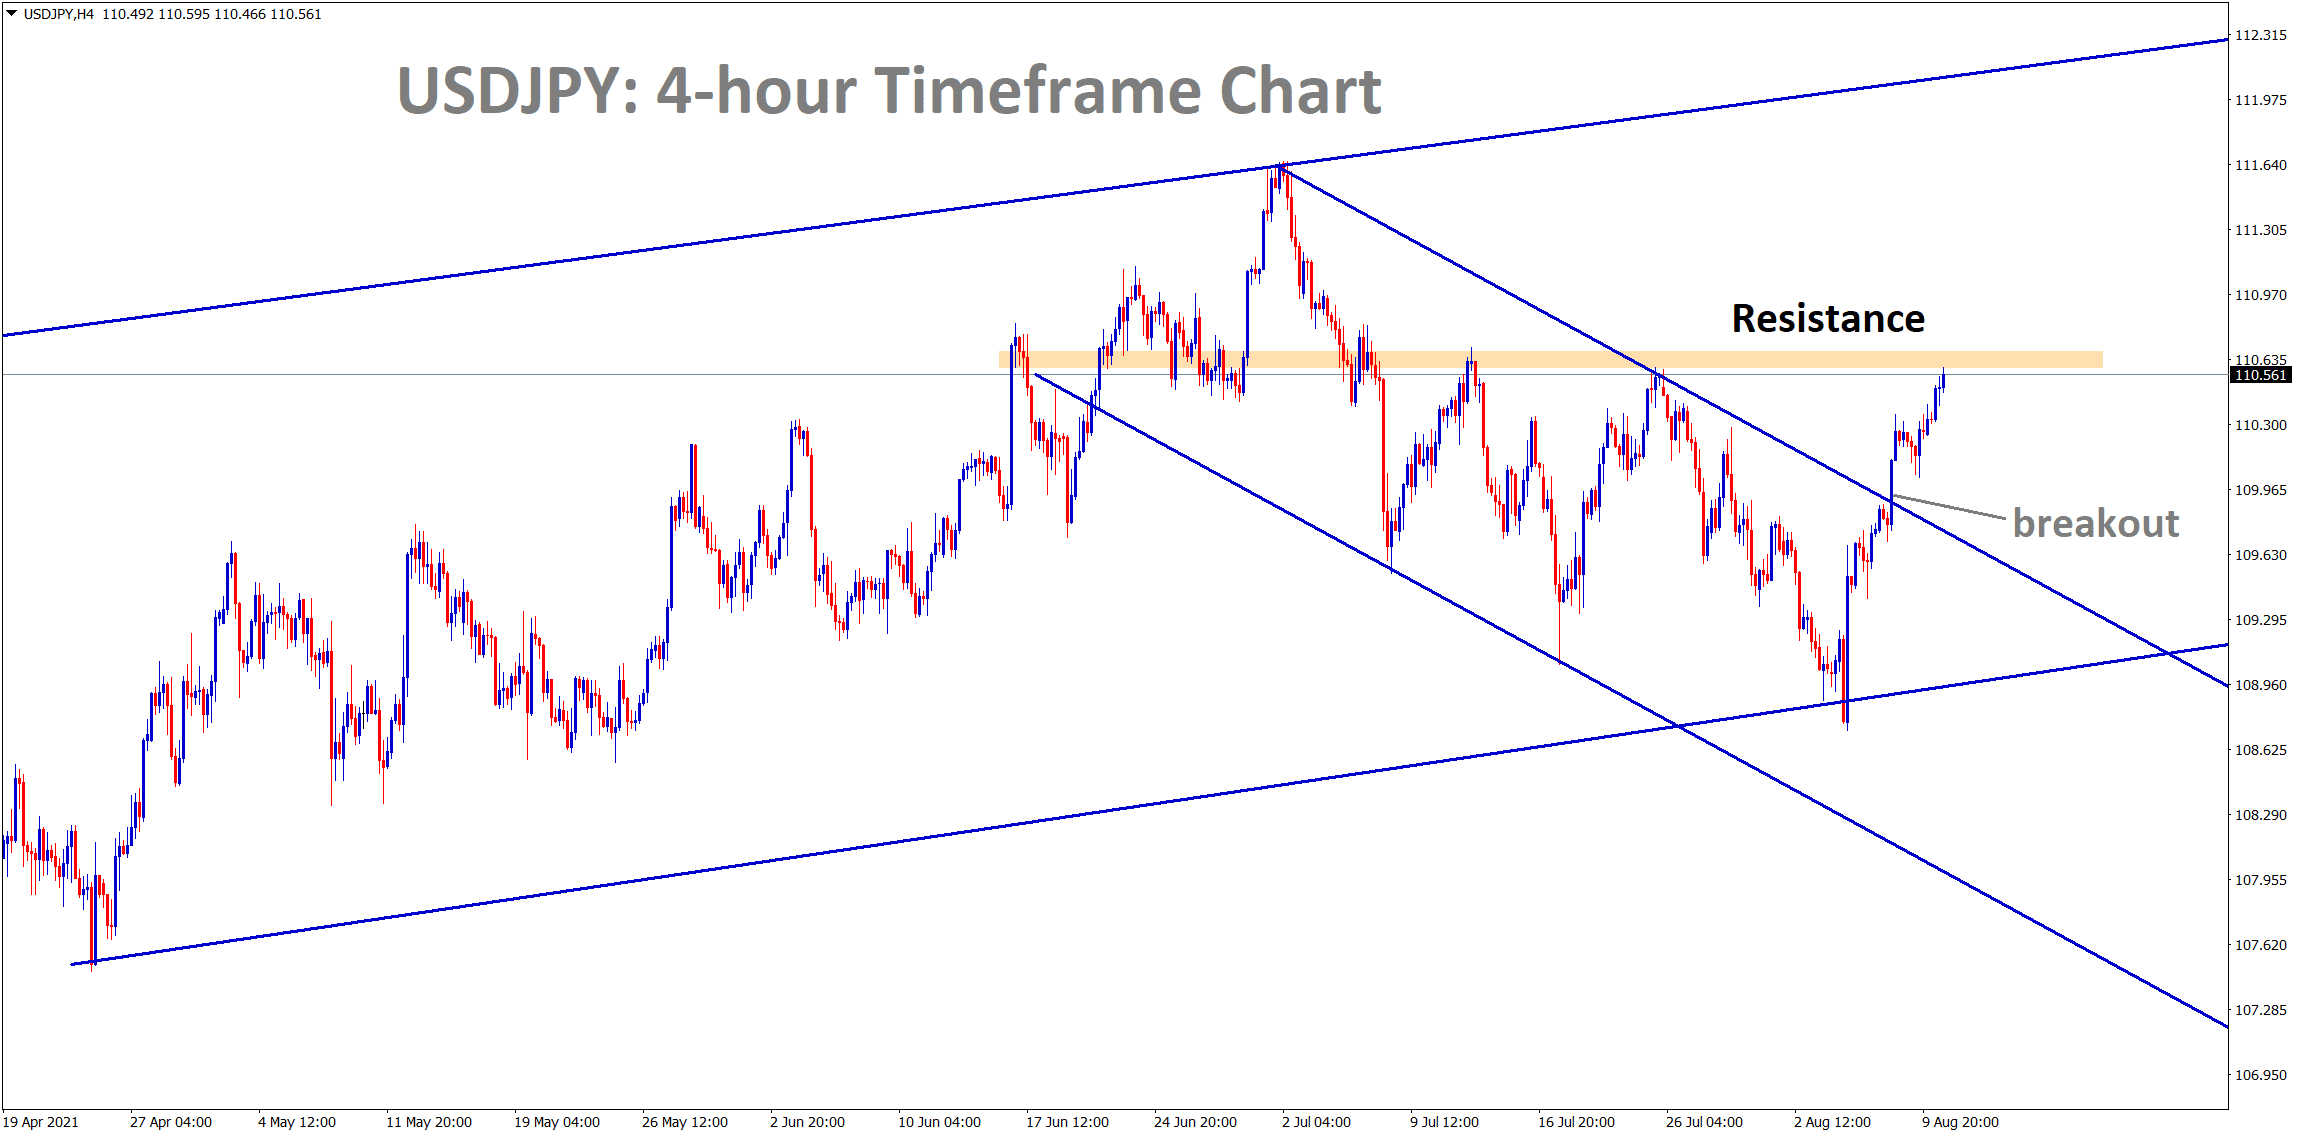 USDJPY has broken the top of the descending channel and its heading to the resistance high but if it breaks it it will rise up more.